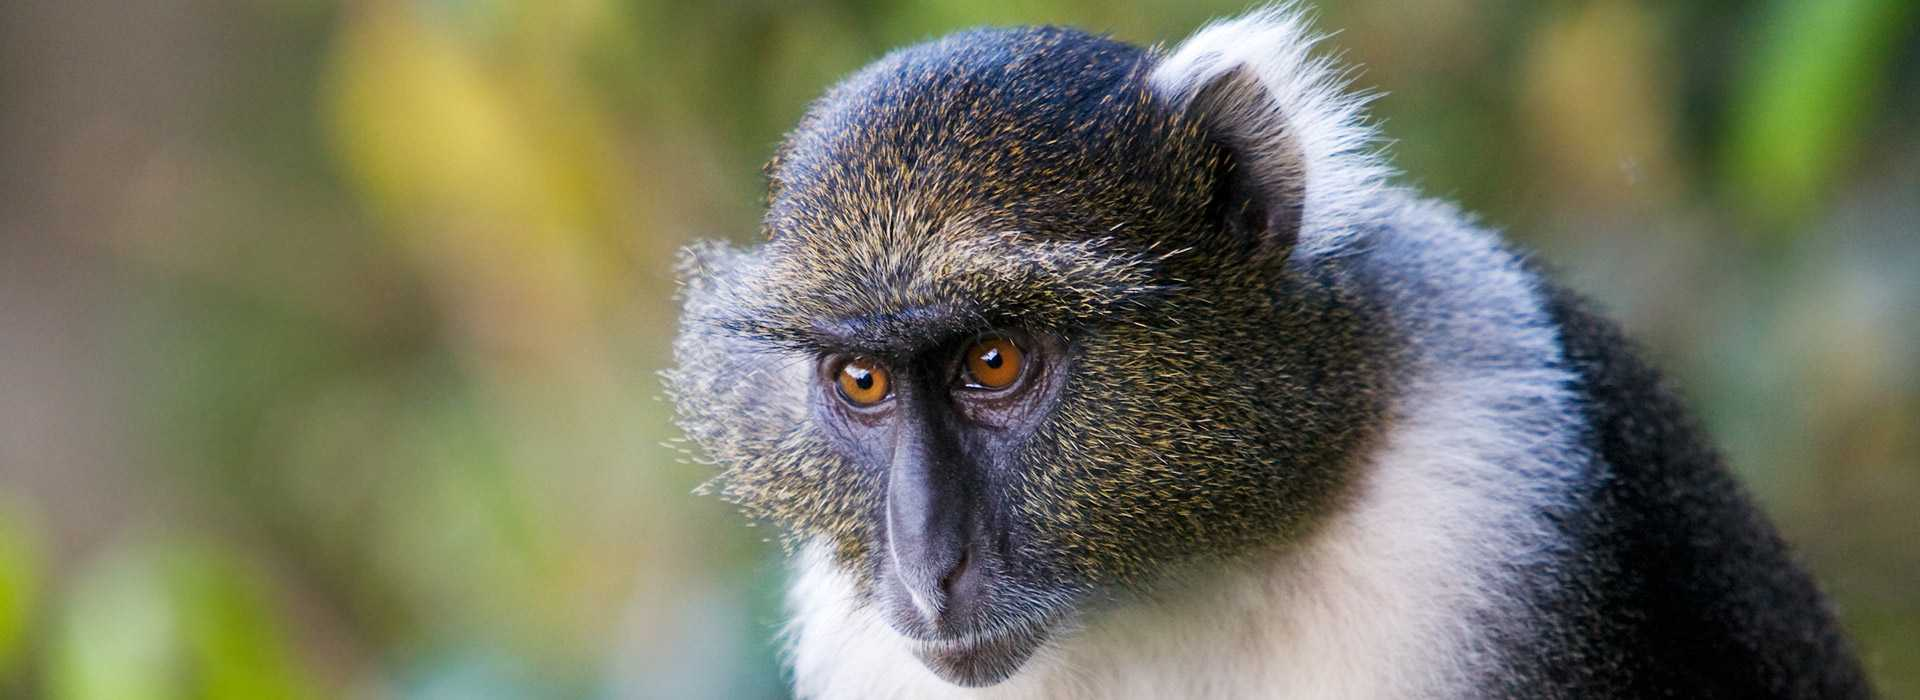 Sykes Monkey At Mount Kenya